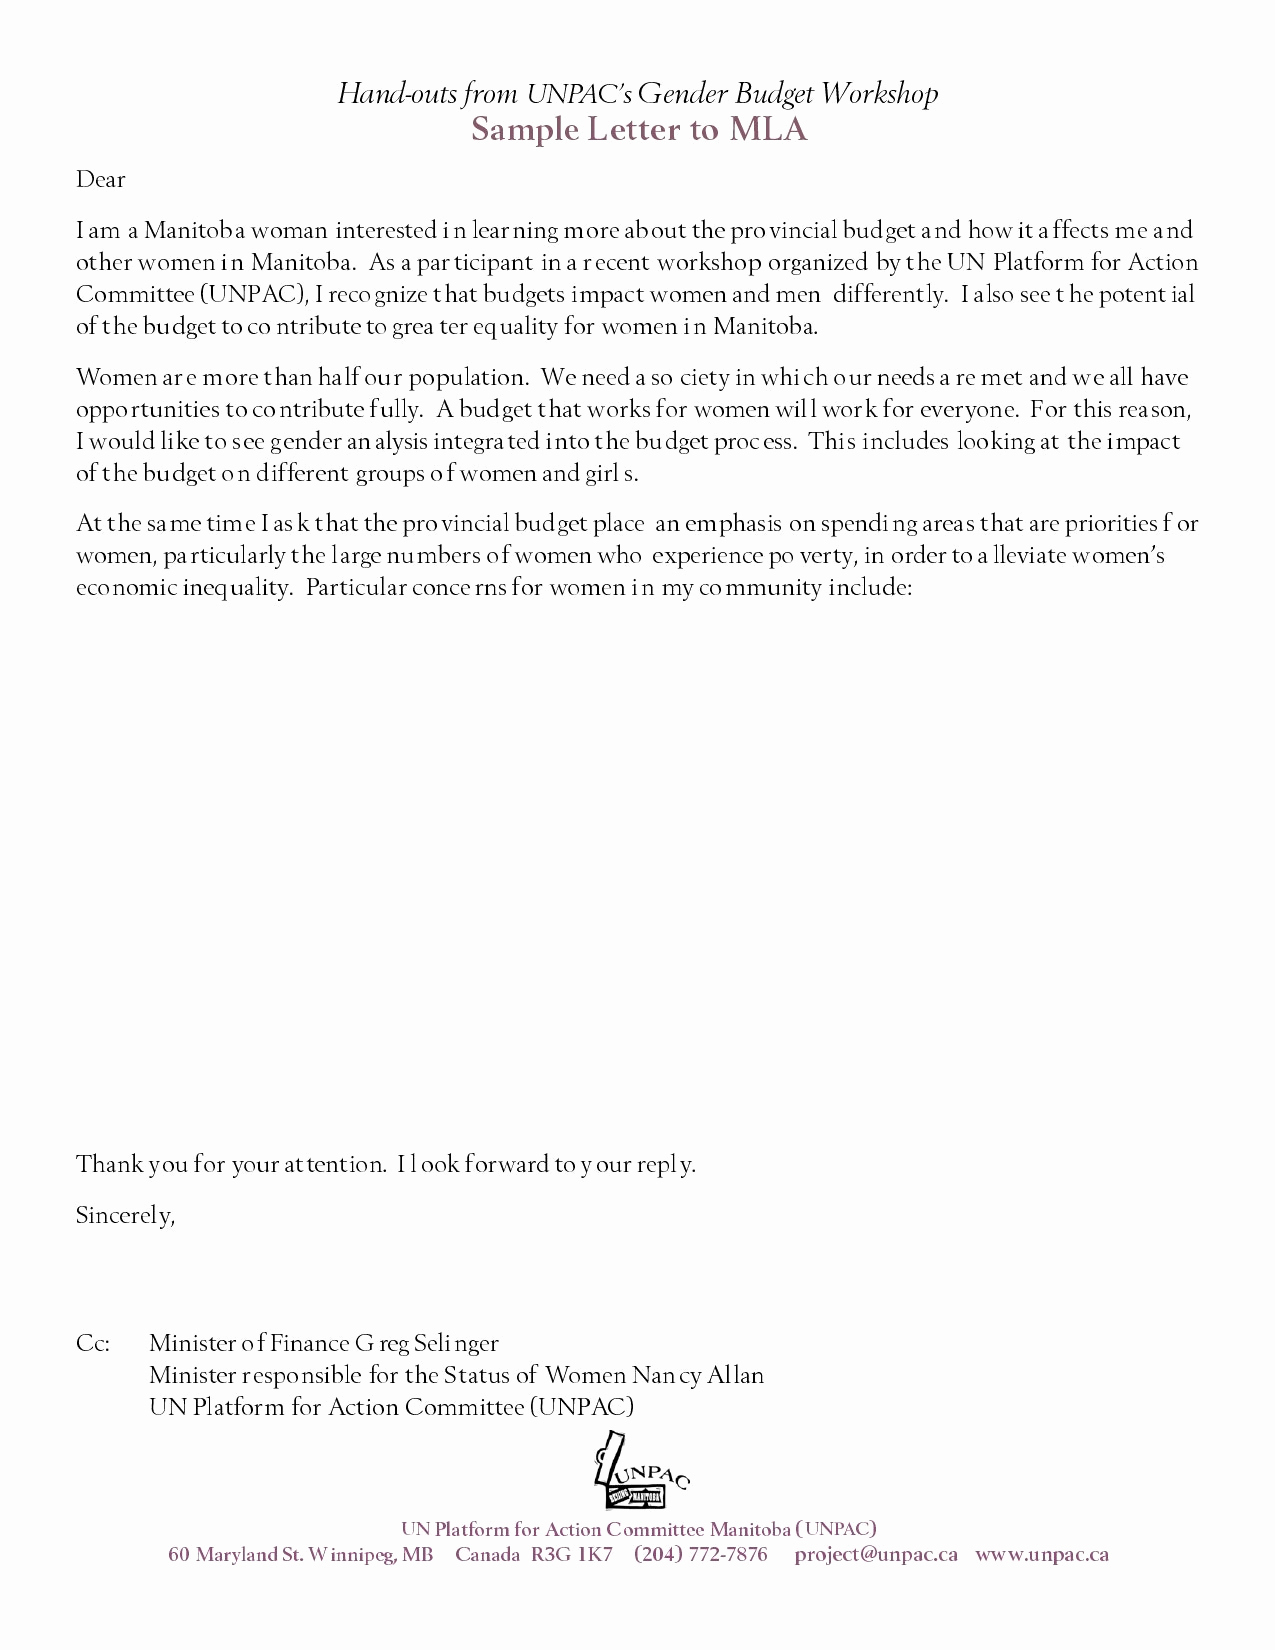 Mla Cover Letter Template - Mla Cover Letterormat Title Page Download Example Essay High School